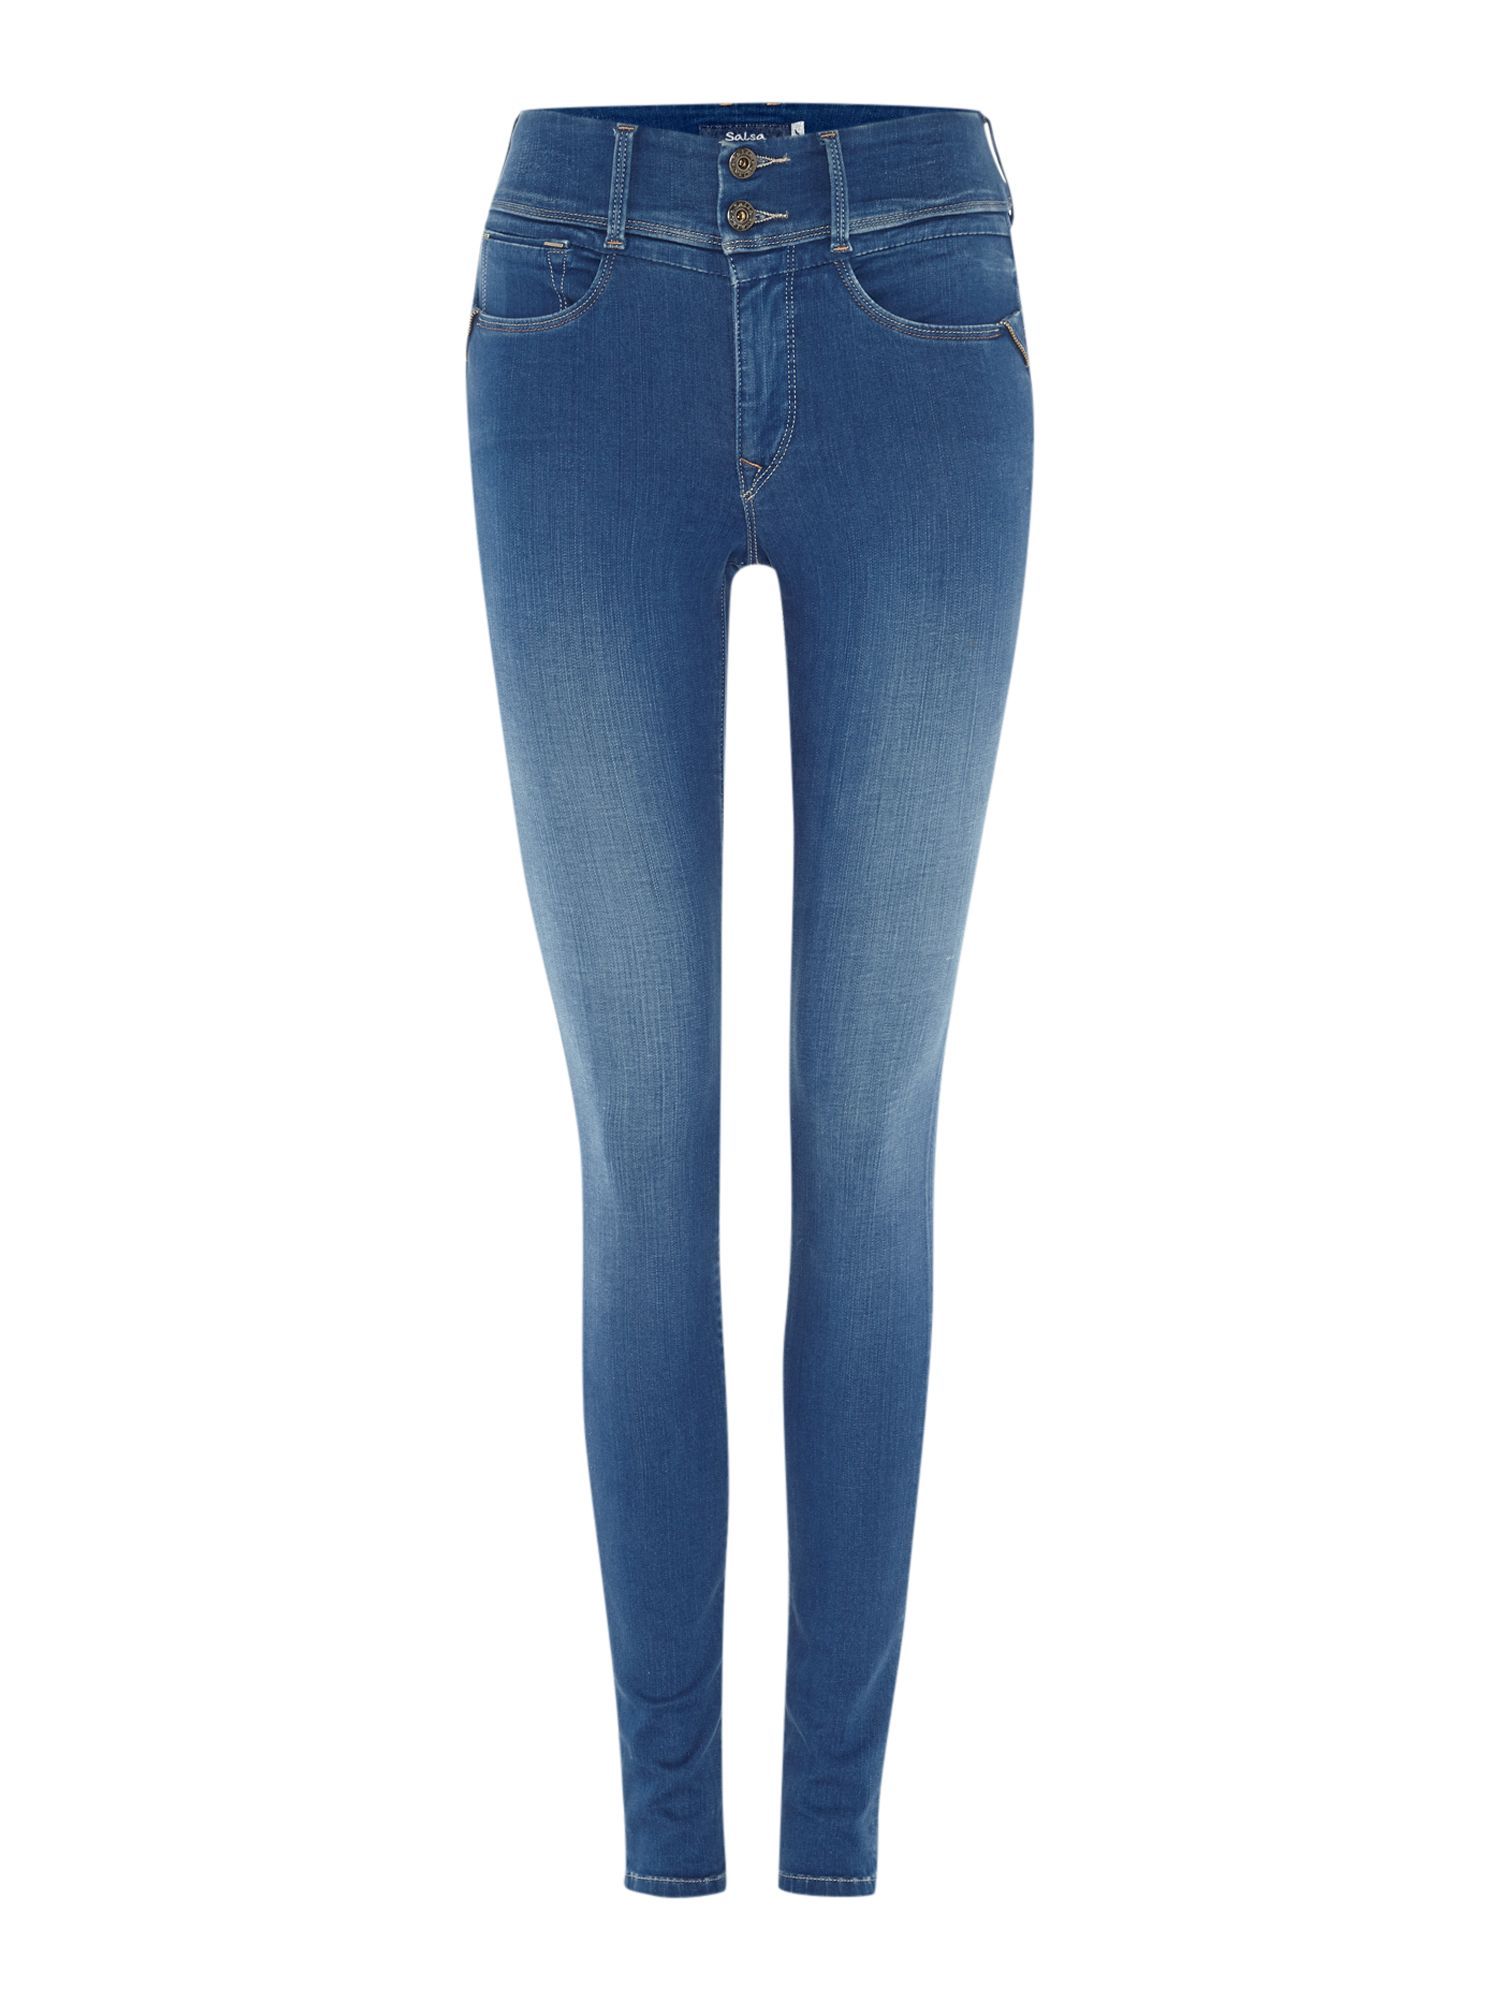 Secret Push-In skinny jeans with zip detail